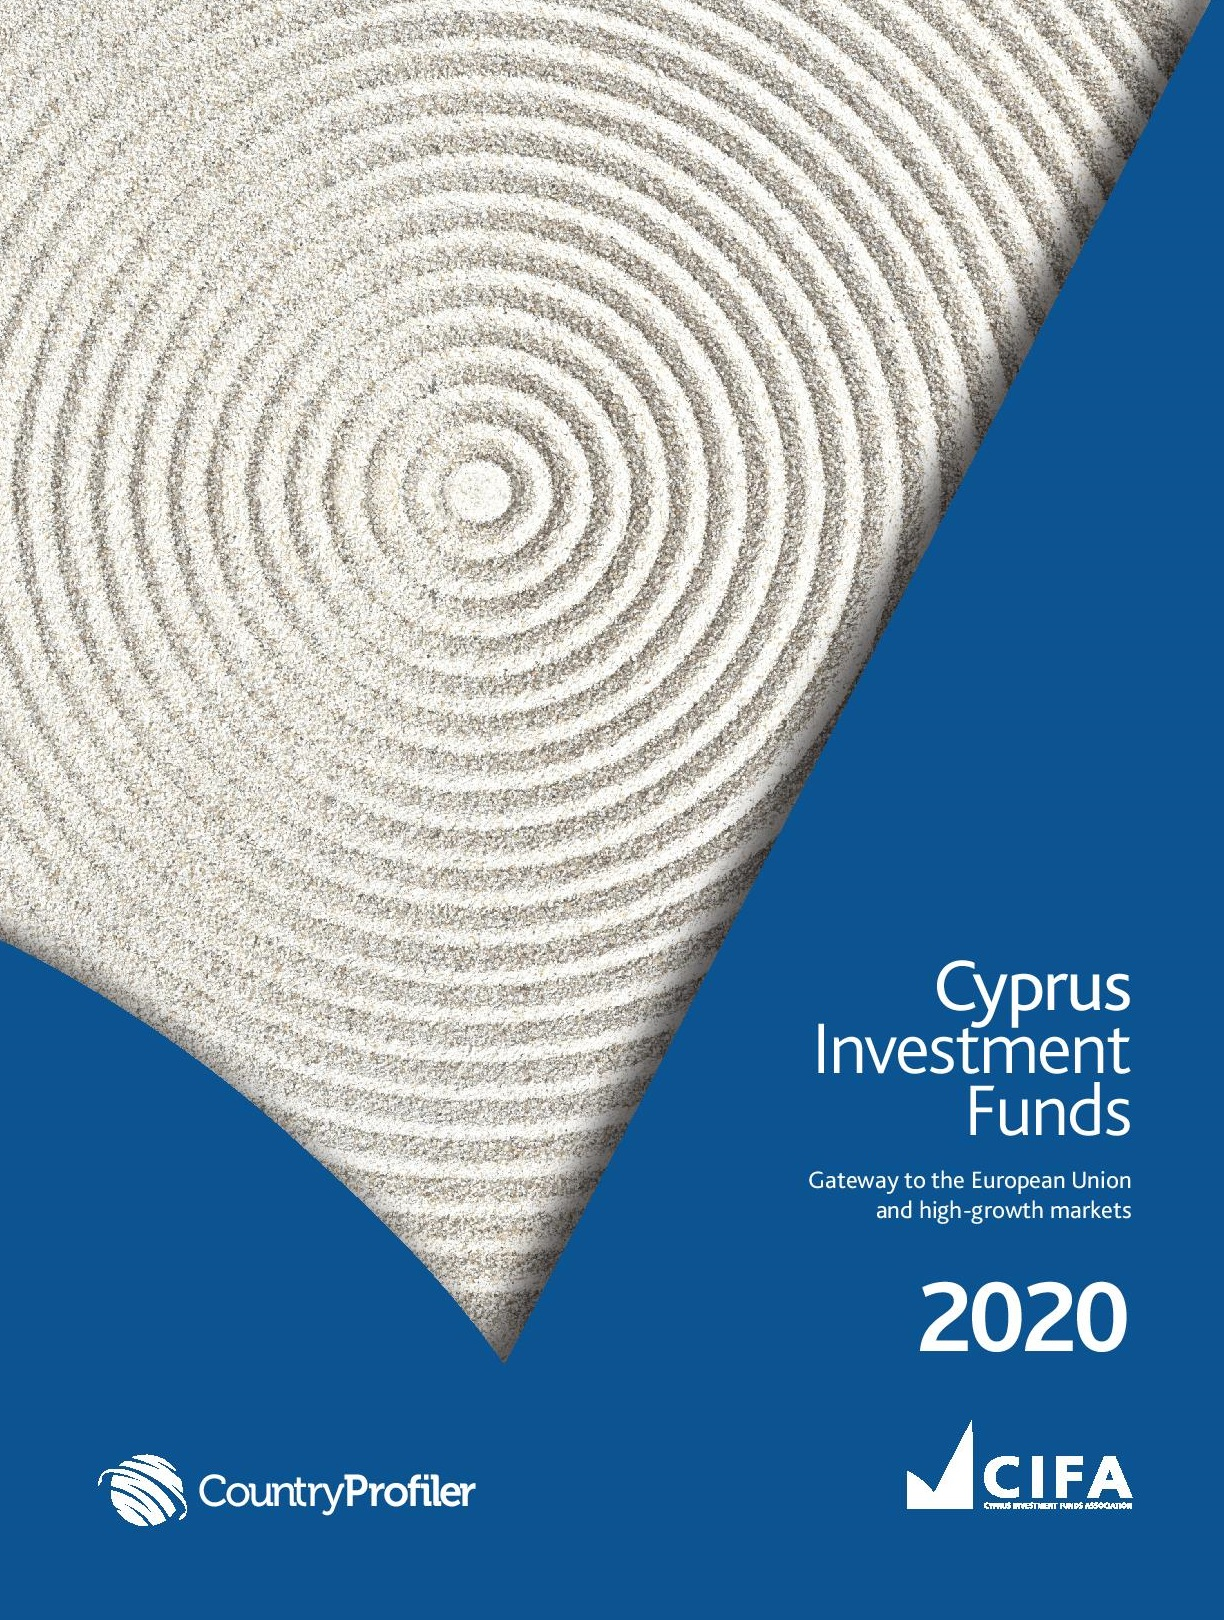 CIFA Investment Funds Guide 2020